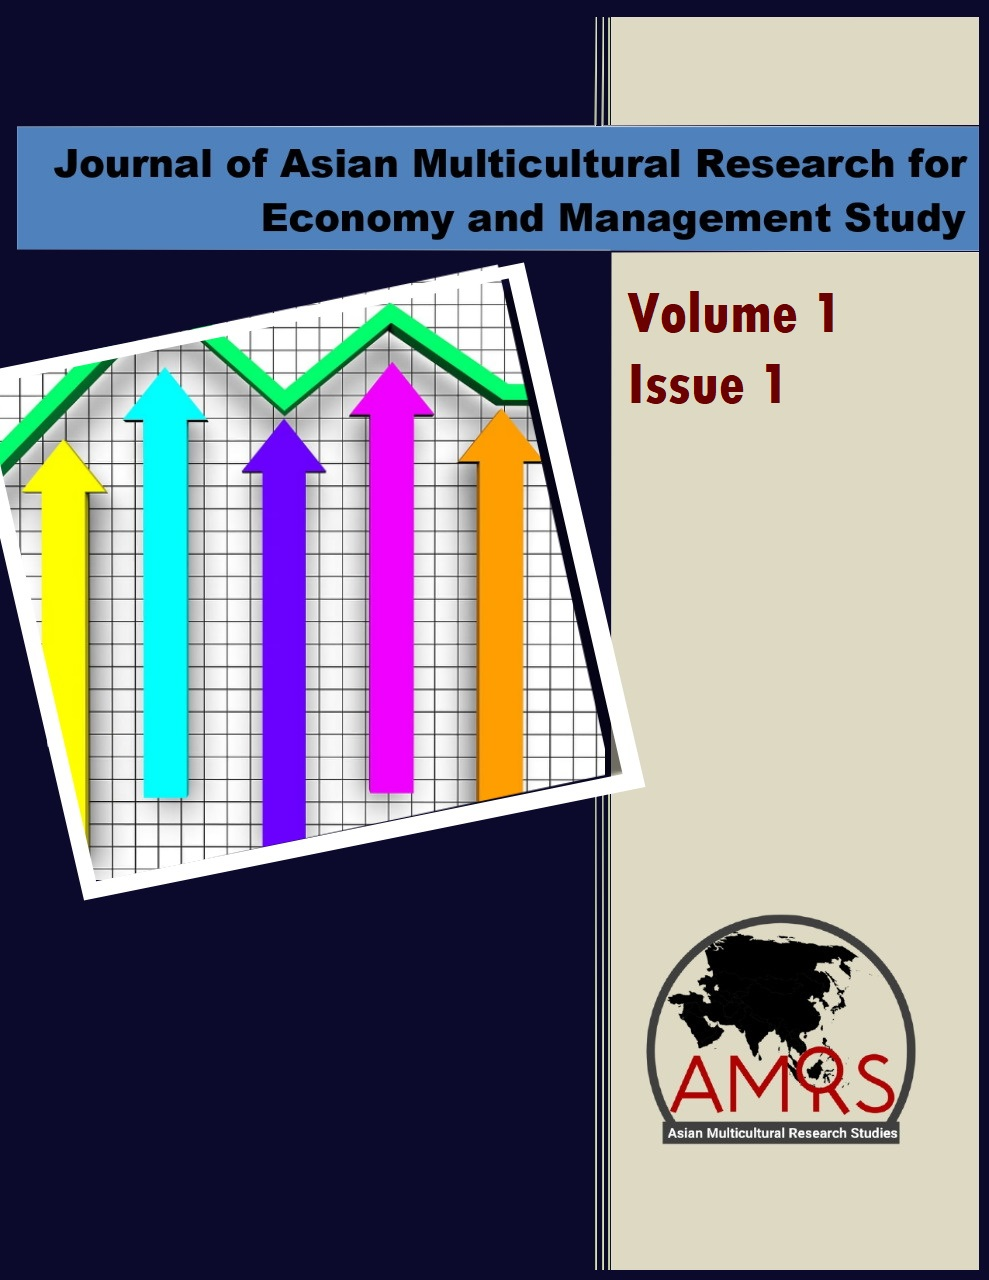 View Vol. 1 No. 1 (2020): Journal of Asian Multicultural Research on Economy and Management Study